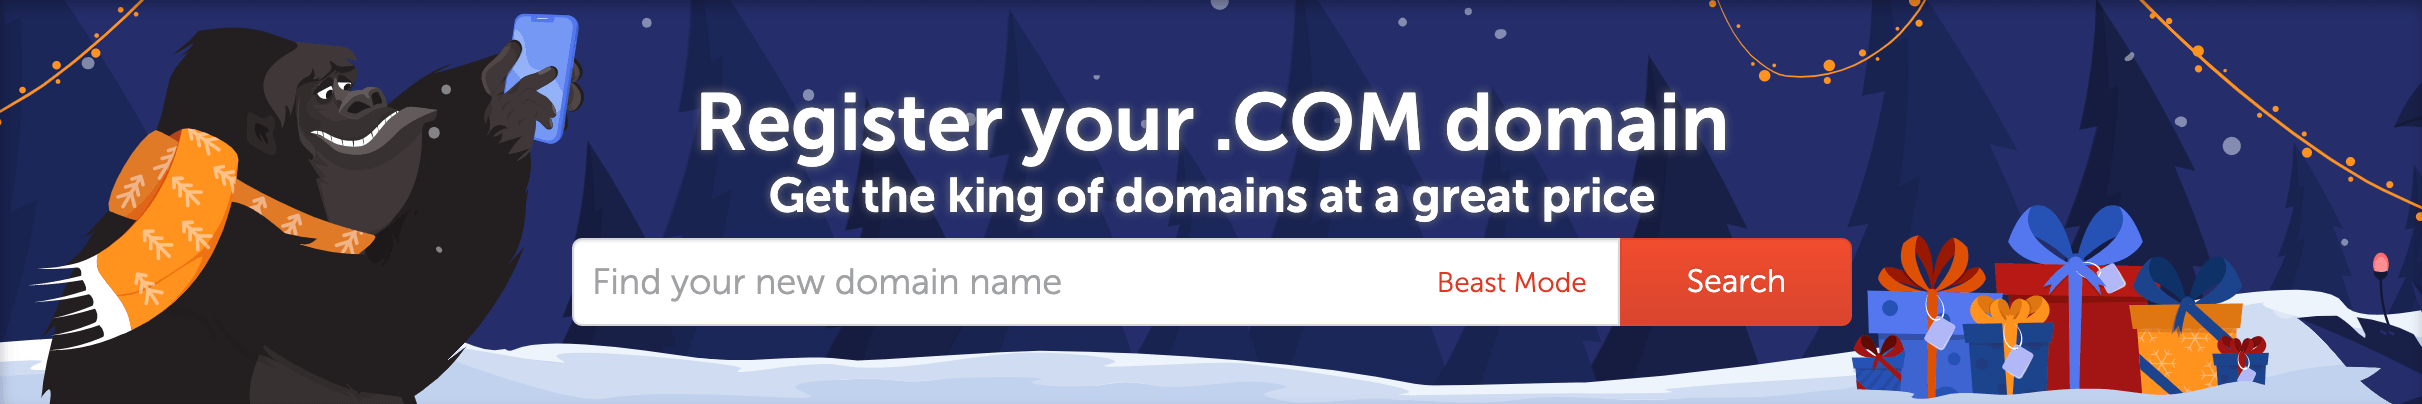 .com domain registration with NameCheap.